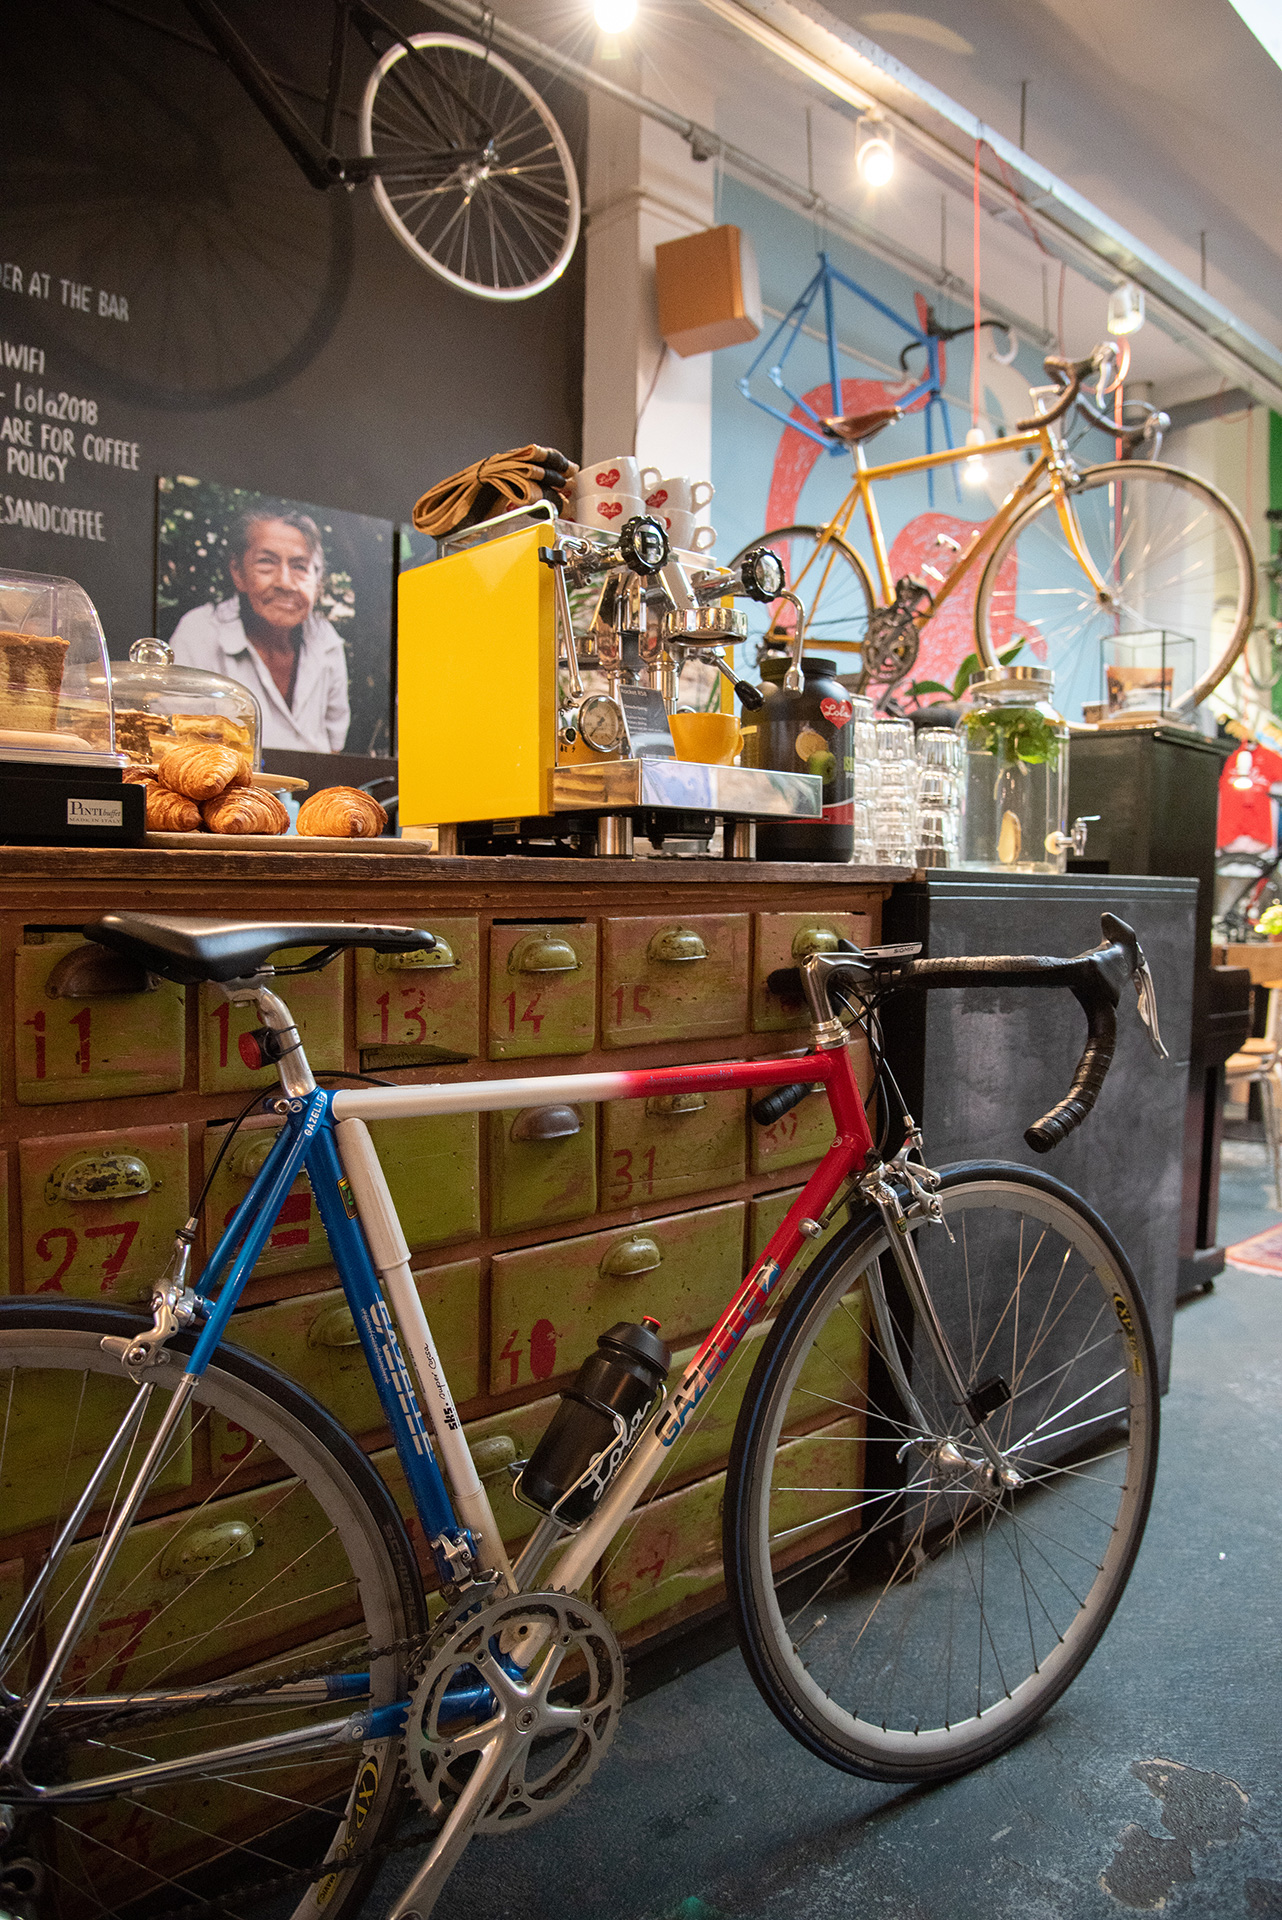 Lola Bikes & Coffee in Den Haag